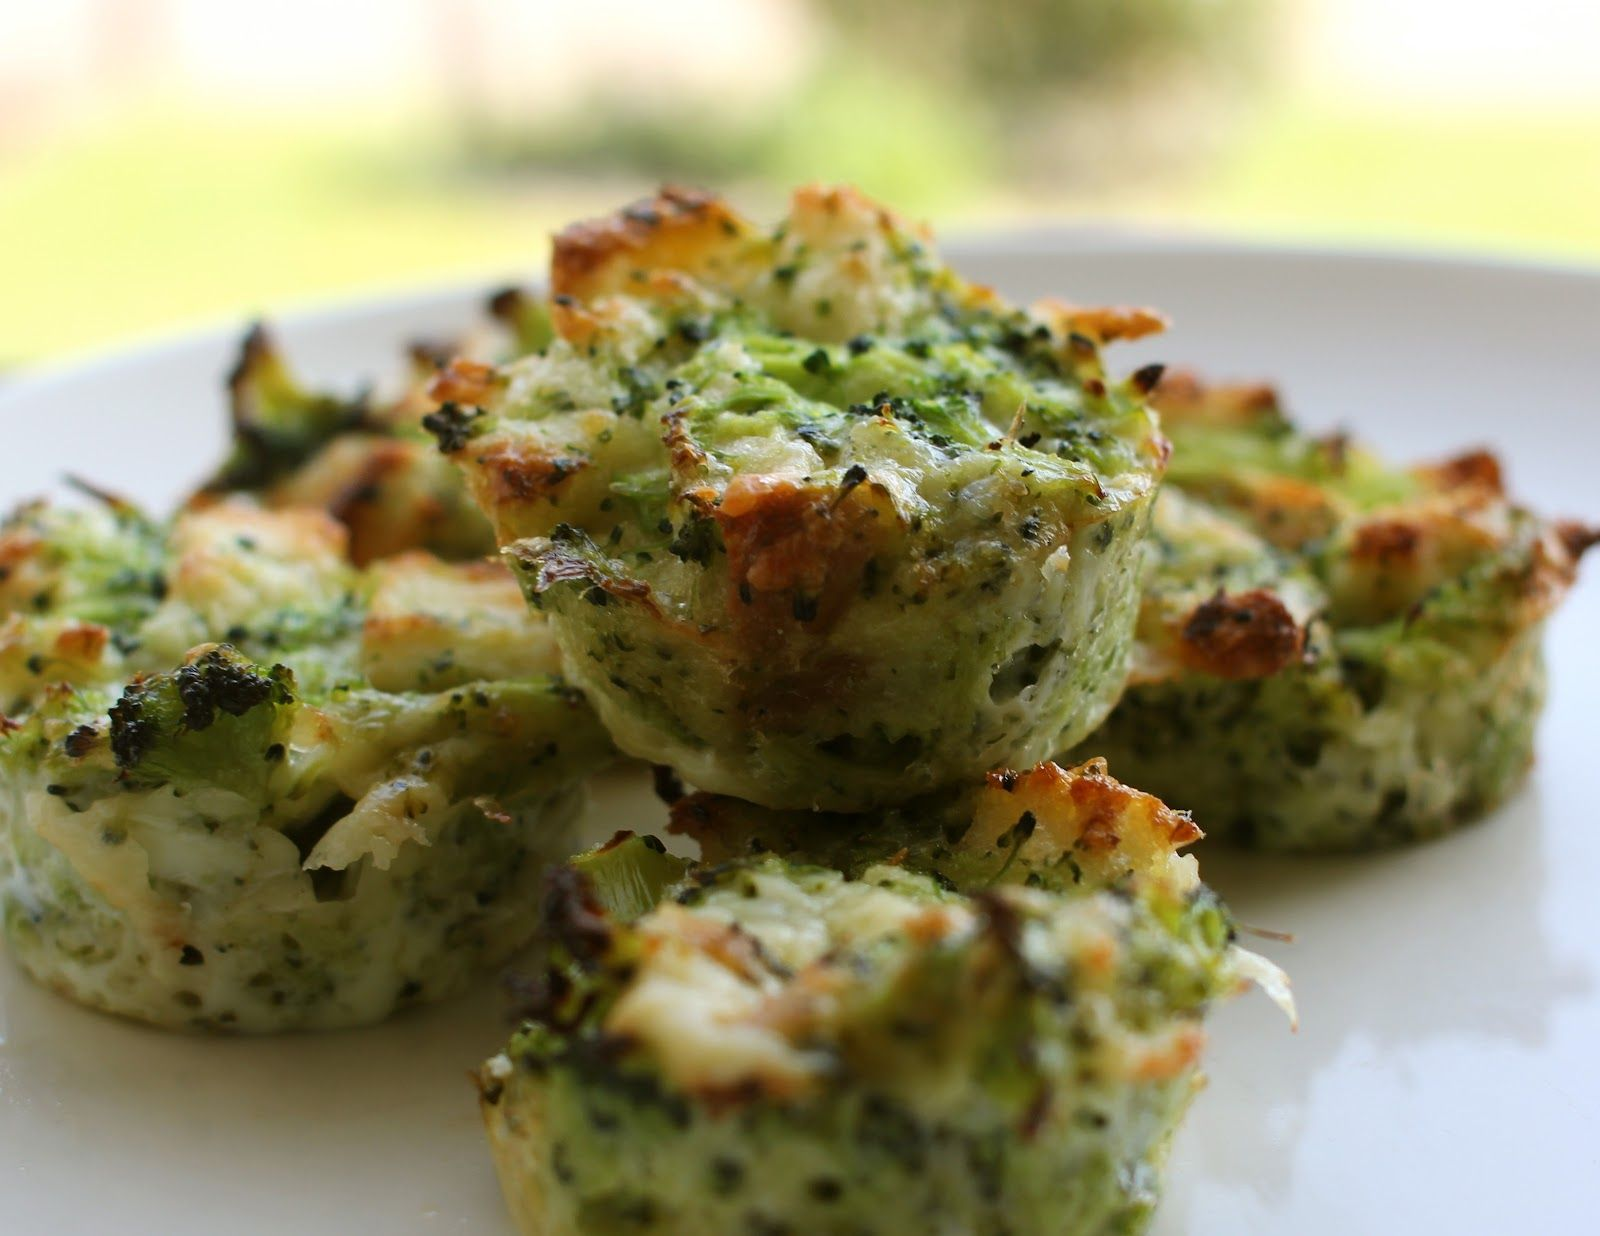 Toddler finger foods: Broccoli nuggets #vegetarian #healthy #recipe #eatclean #recipes